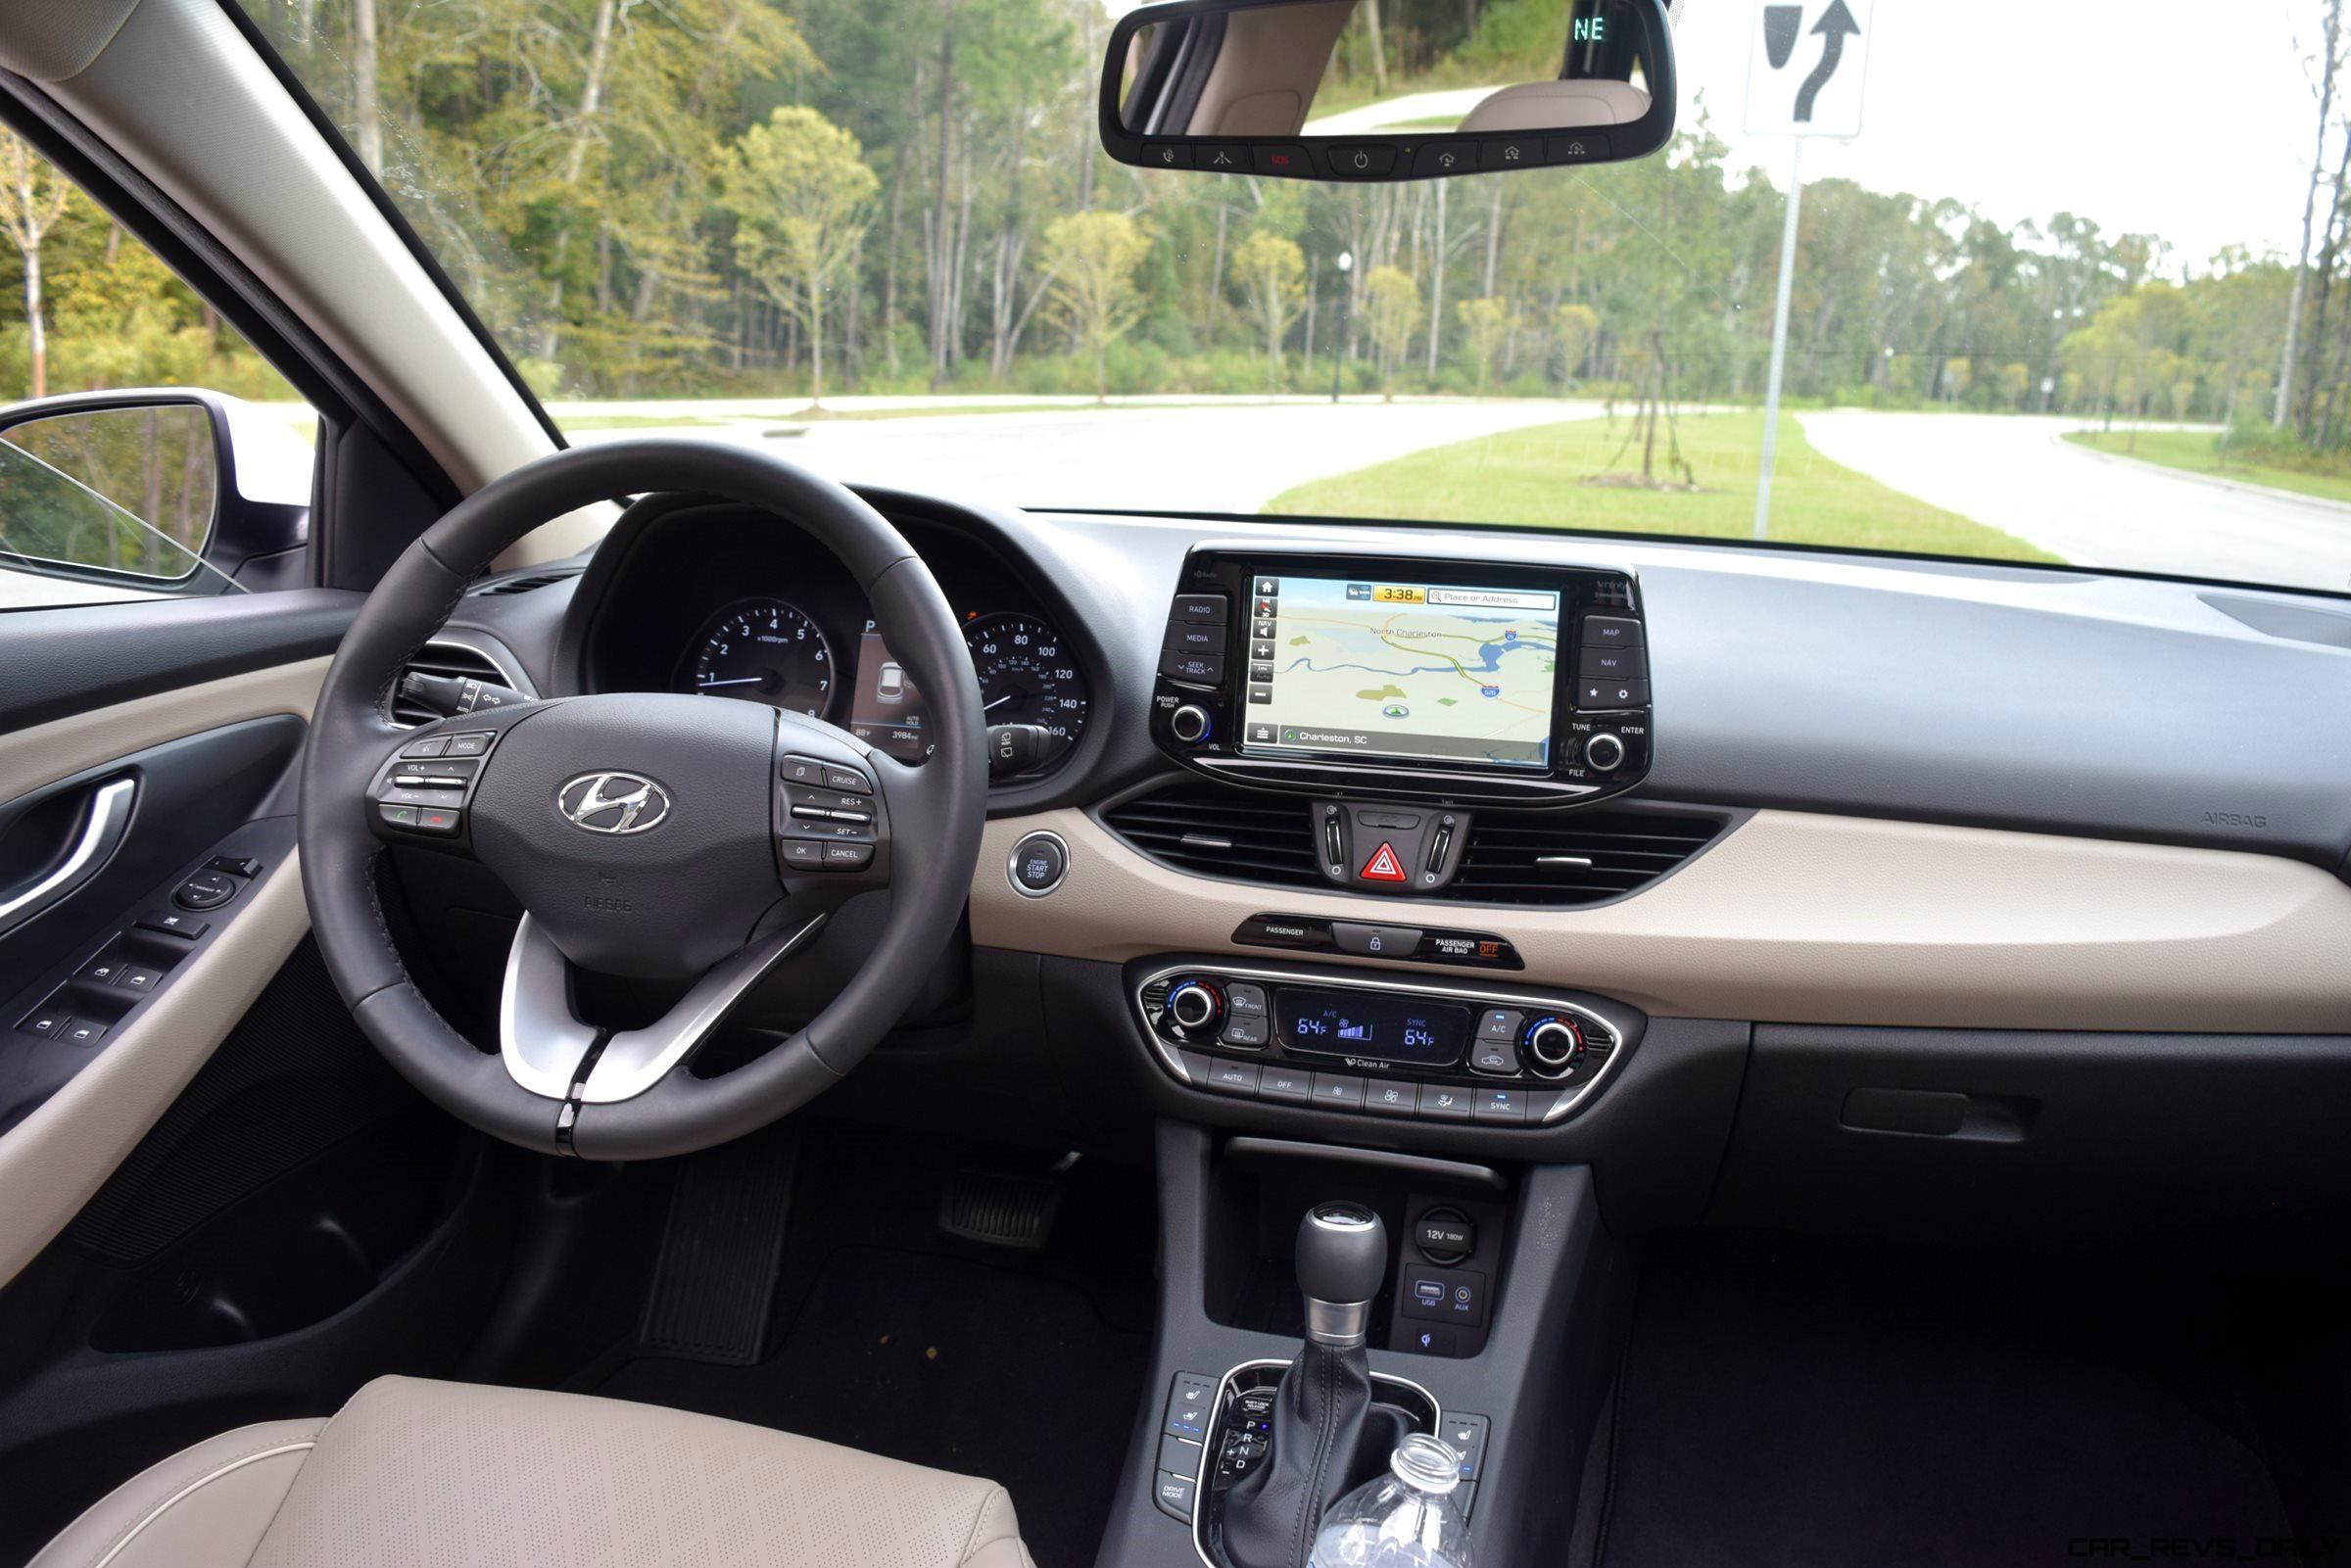 2018 Hyundai Elantra Gt Base Automatic Road Test Review 2 Videos